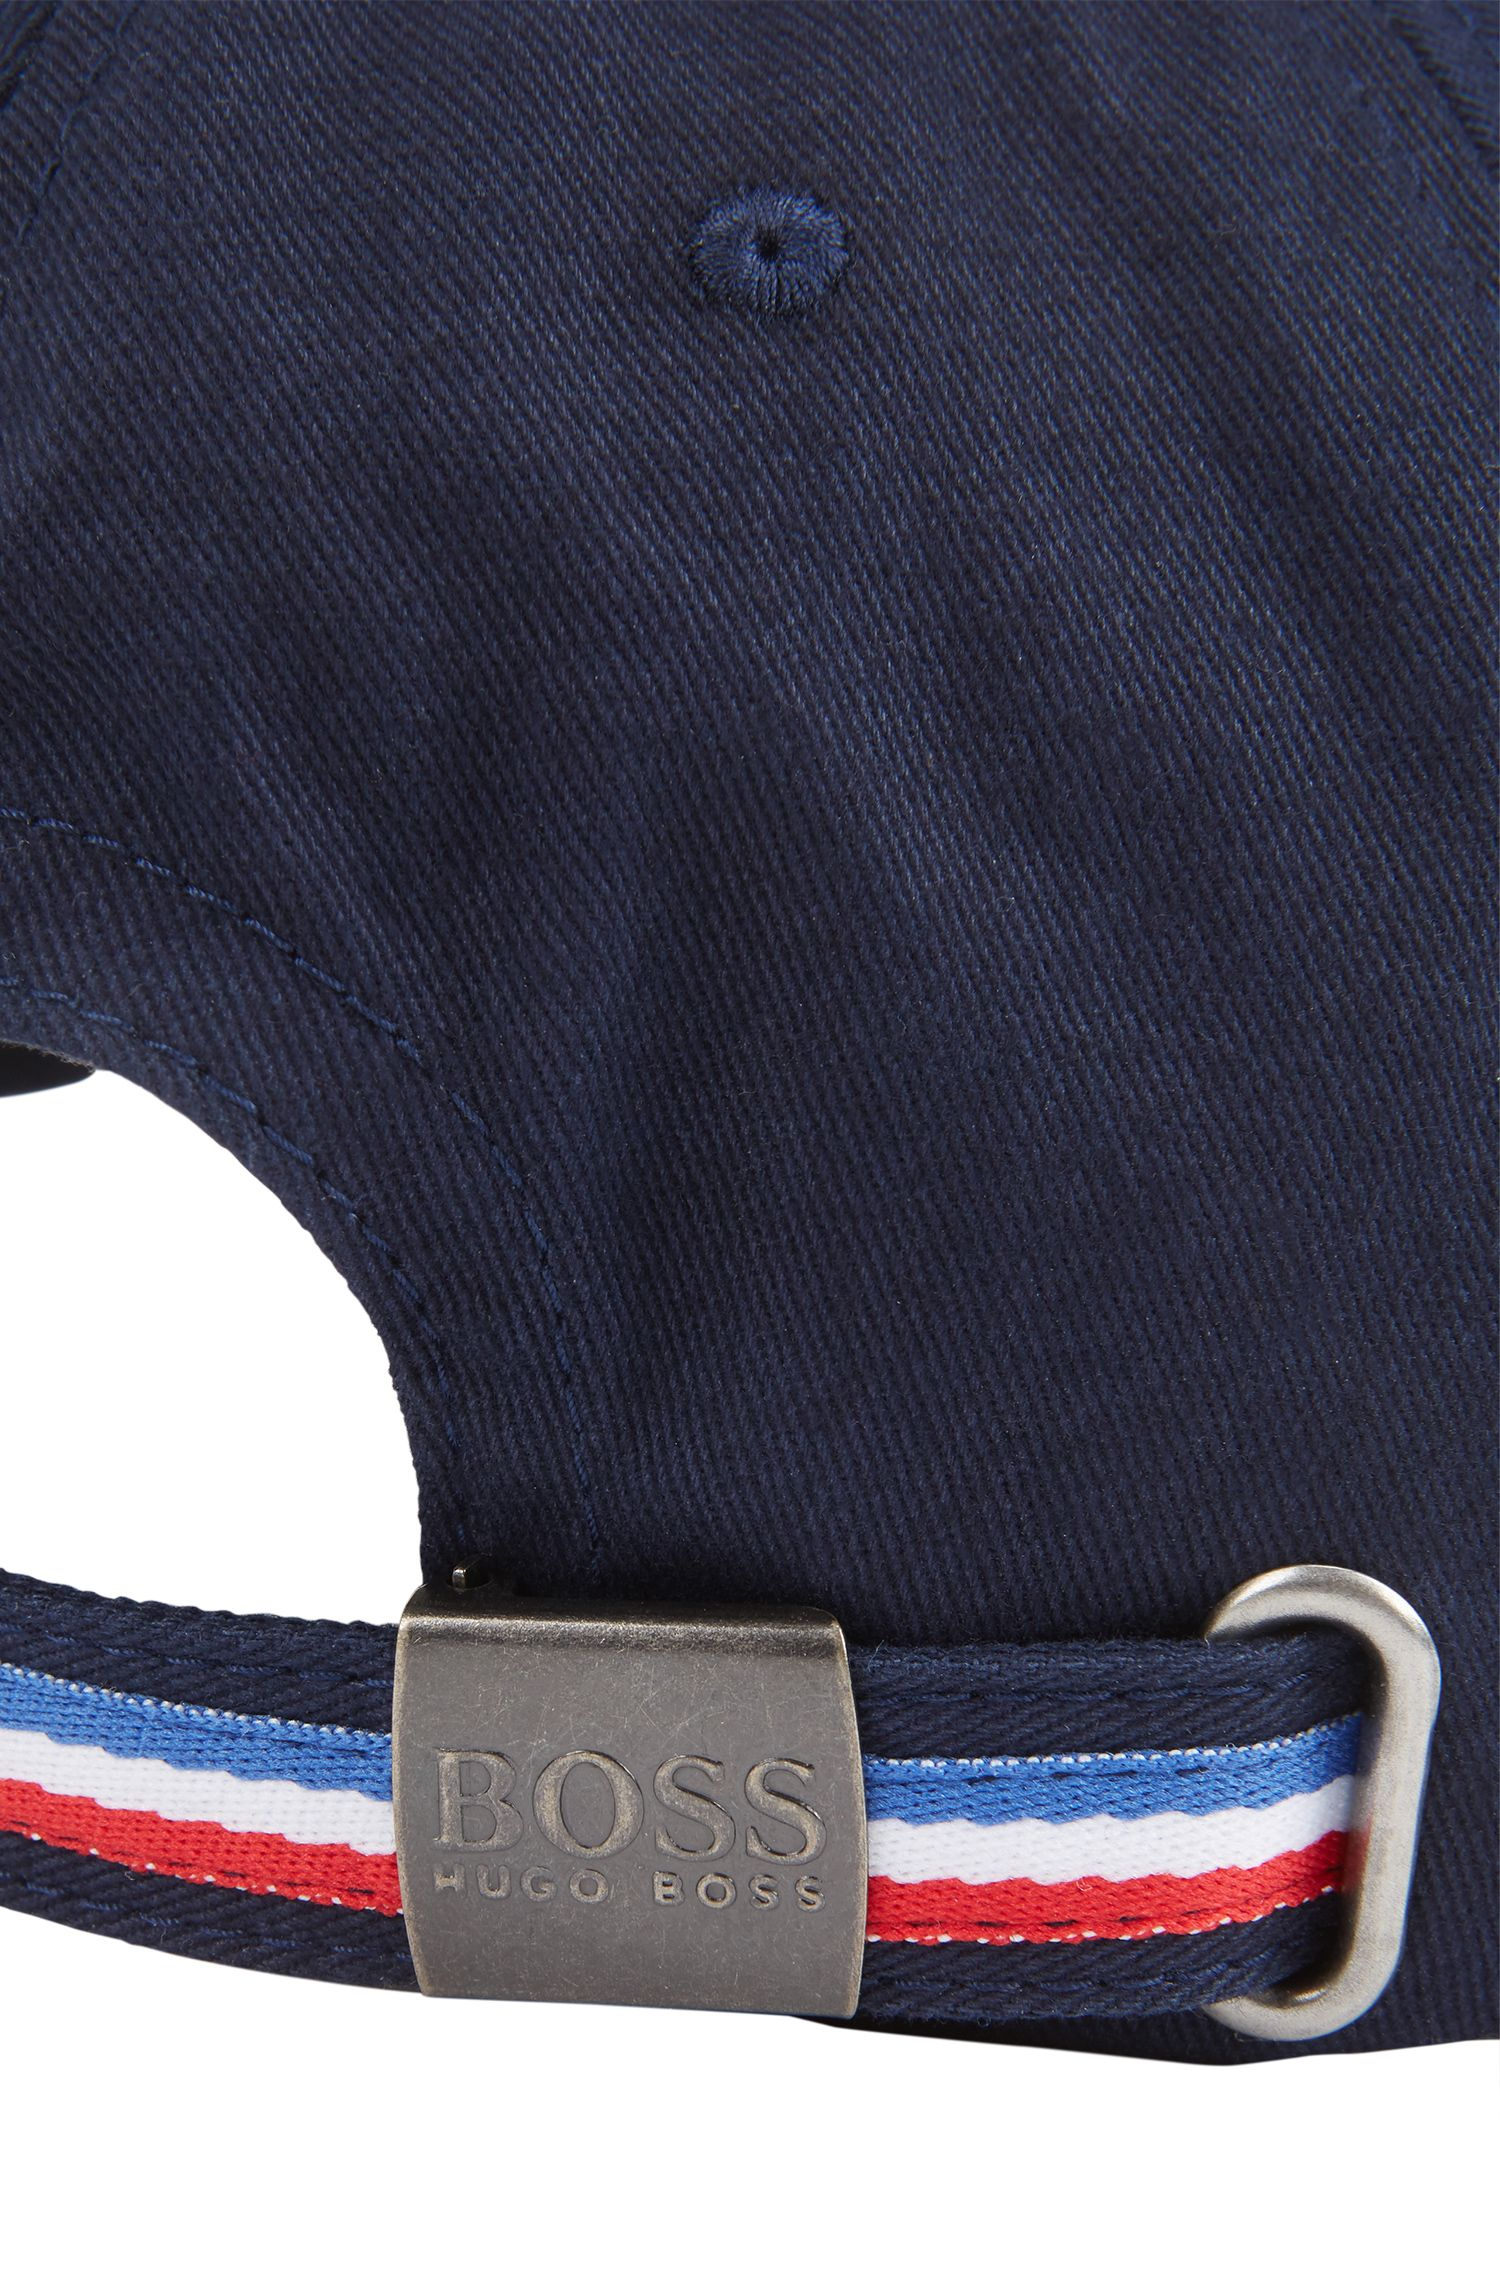 Kids' cap in cotton twill with France's team colours